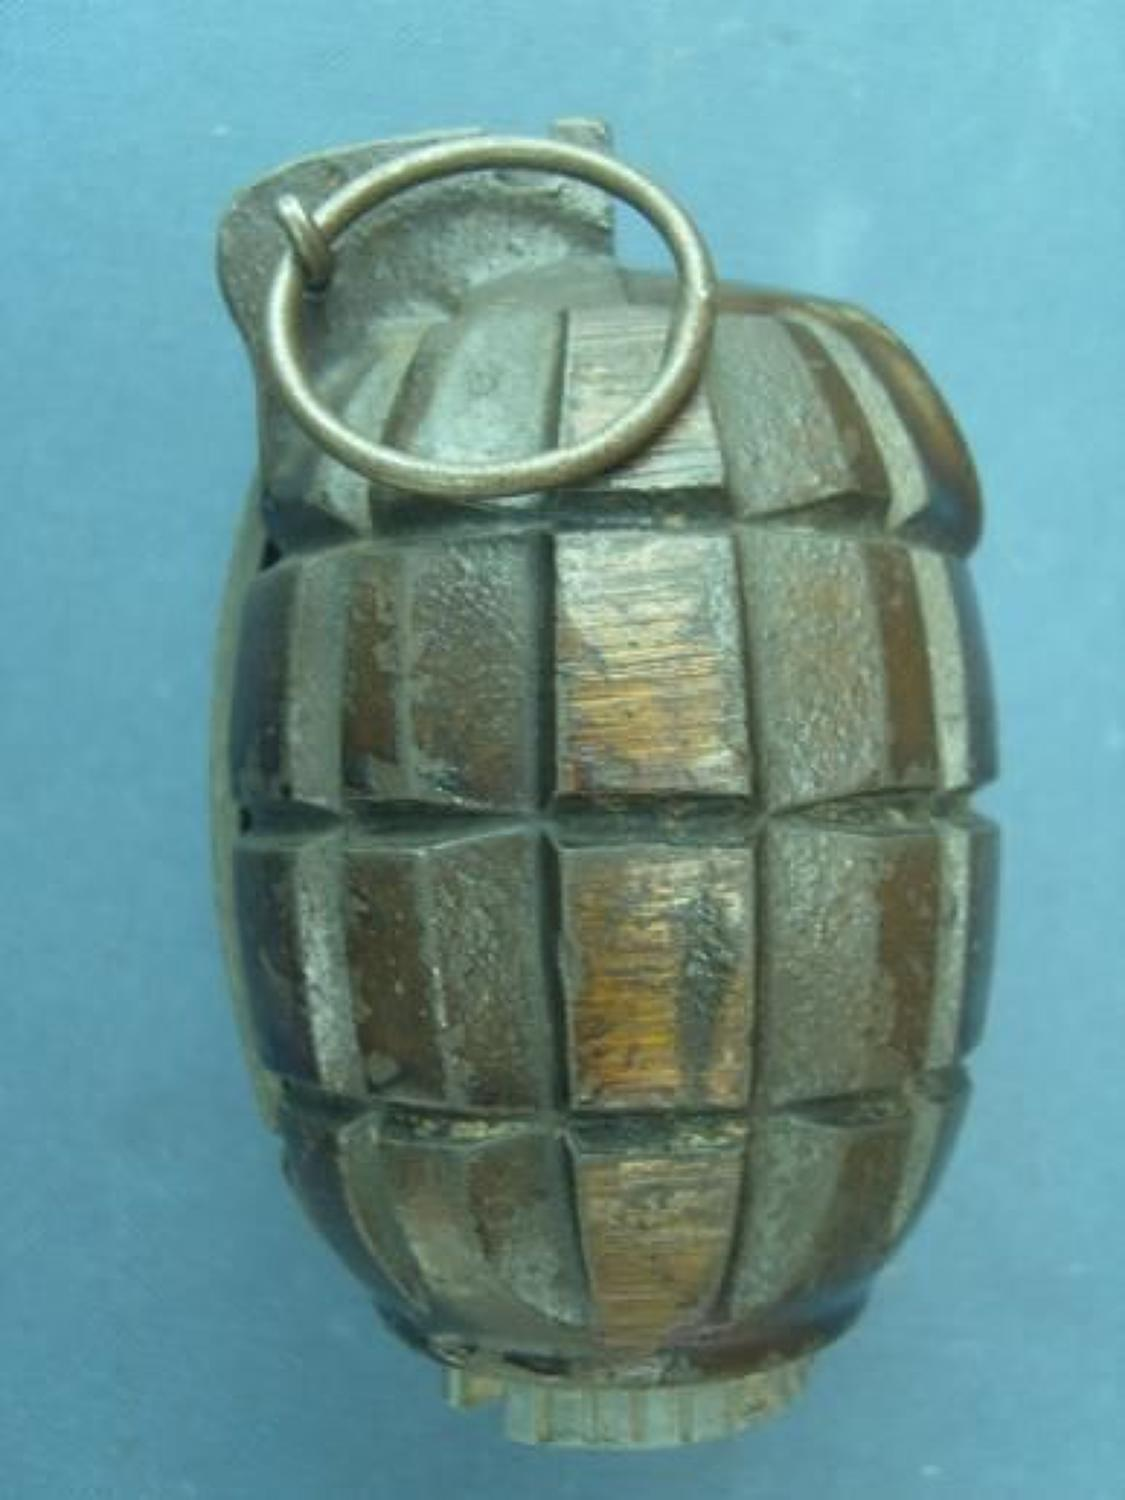 1940 DATED No 36 MILLS GRENADE BY EE Co